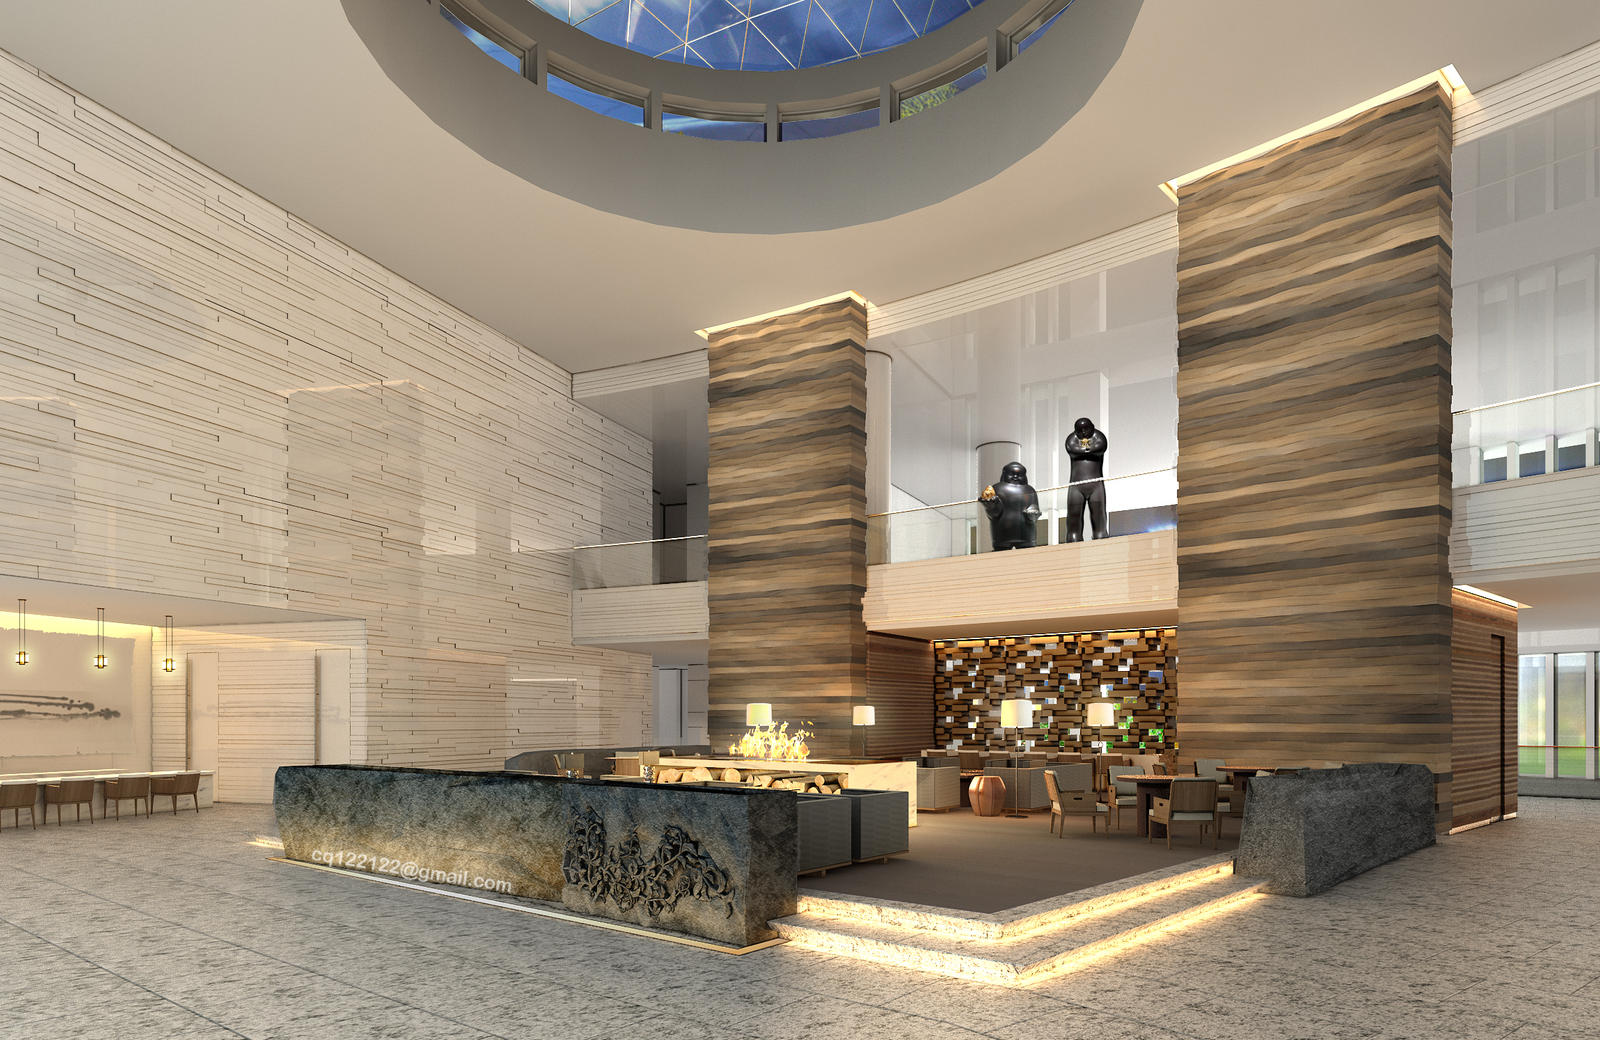 Hotel lobby design by douglasdao on deviantart for A for art design hotel